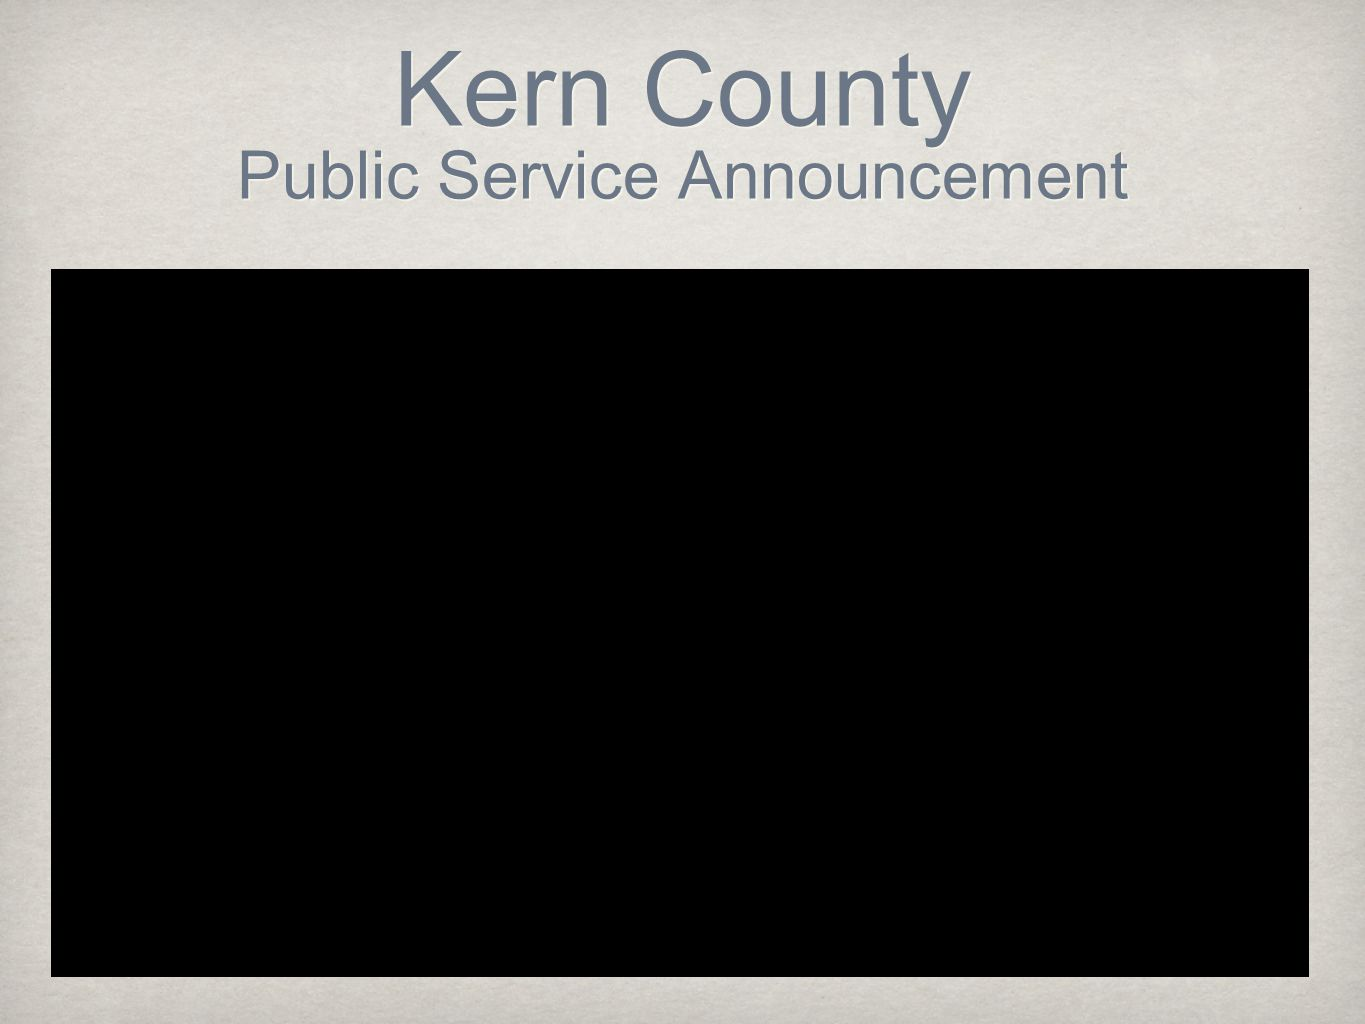 Kern County Public Service Announcement